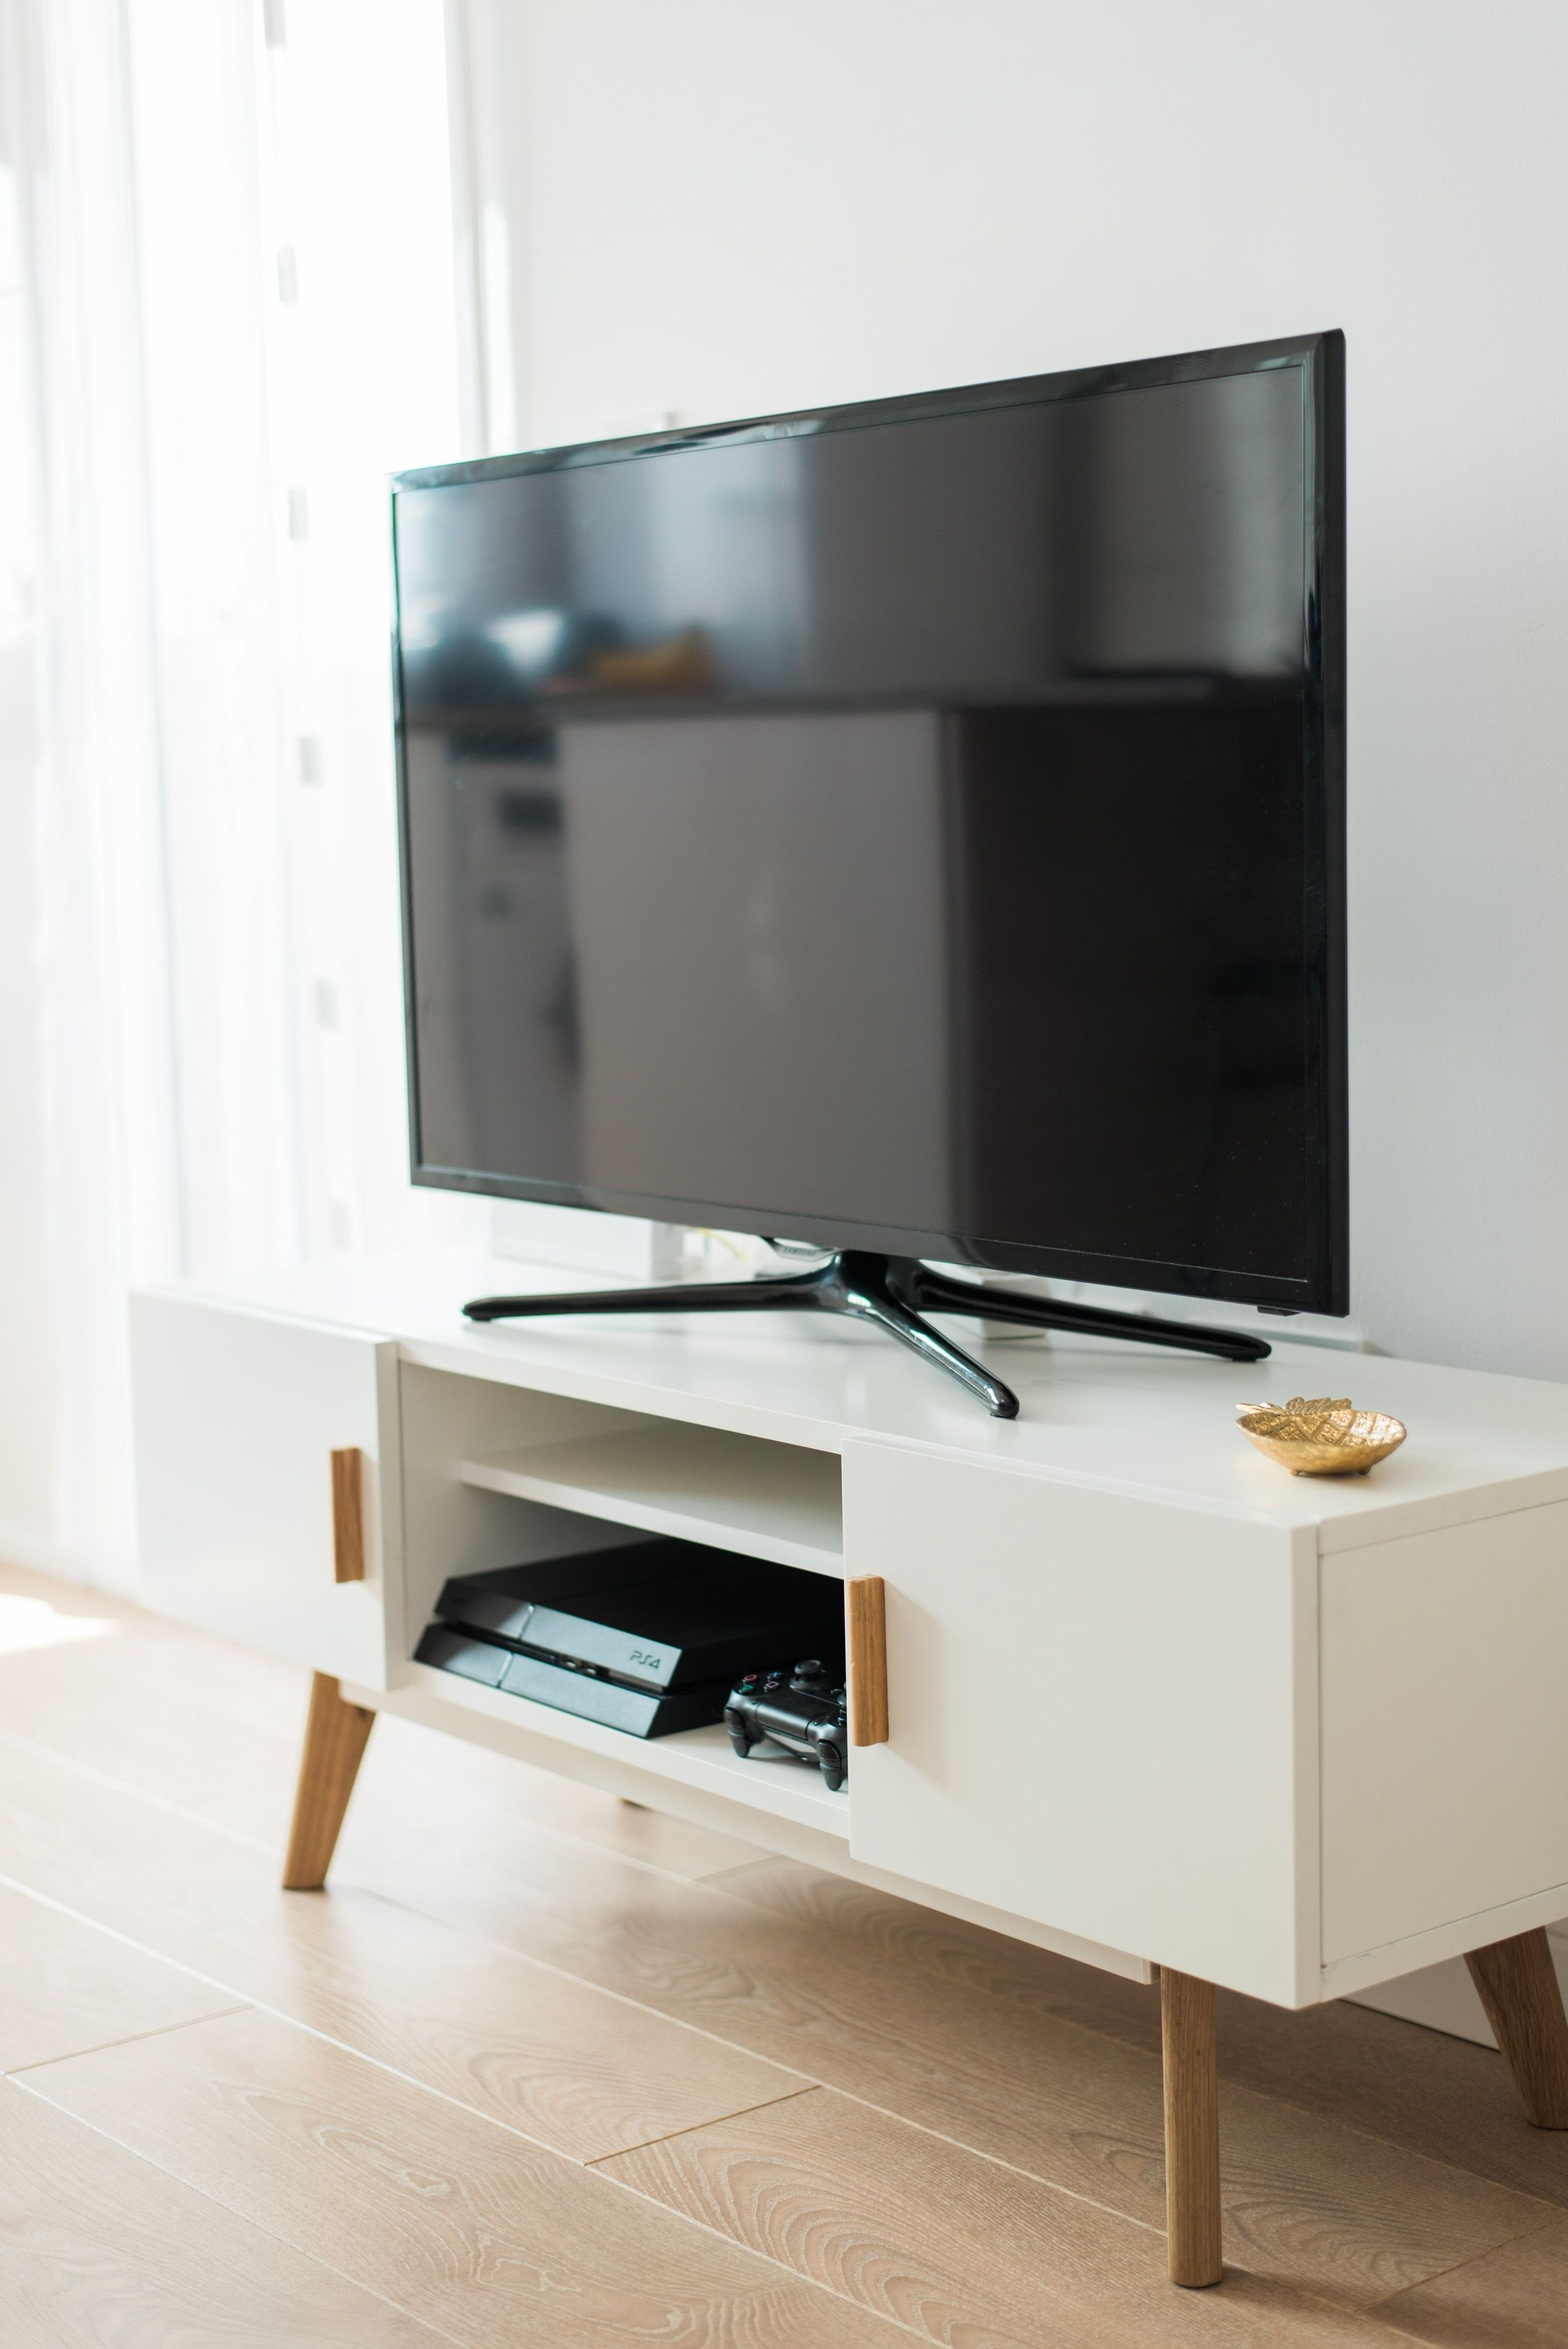 Pinmovie Streaming On Modern Tv Unit | Pinterest | Furniture, Tv in Jigsaw Refinement Sideboards (Image 9 of 30)